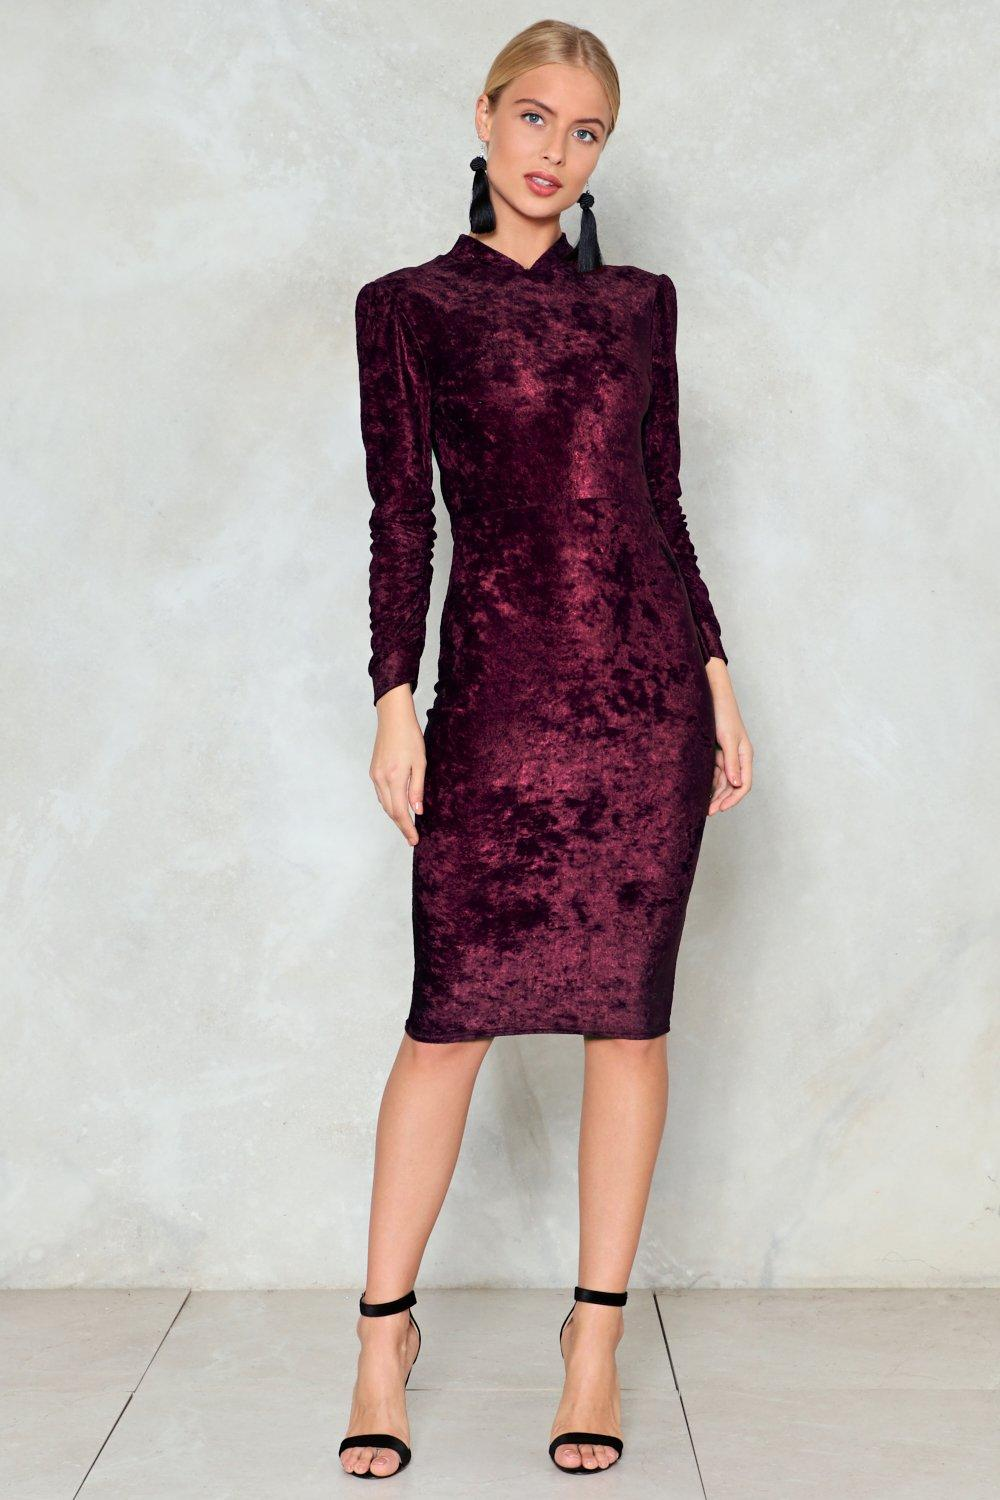 a8dd5a33bf41a Late Night Ruche Velvet Dress | Shop Clothes at Nasty Gal!